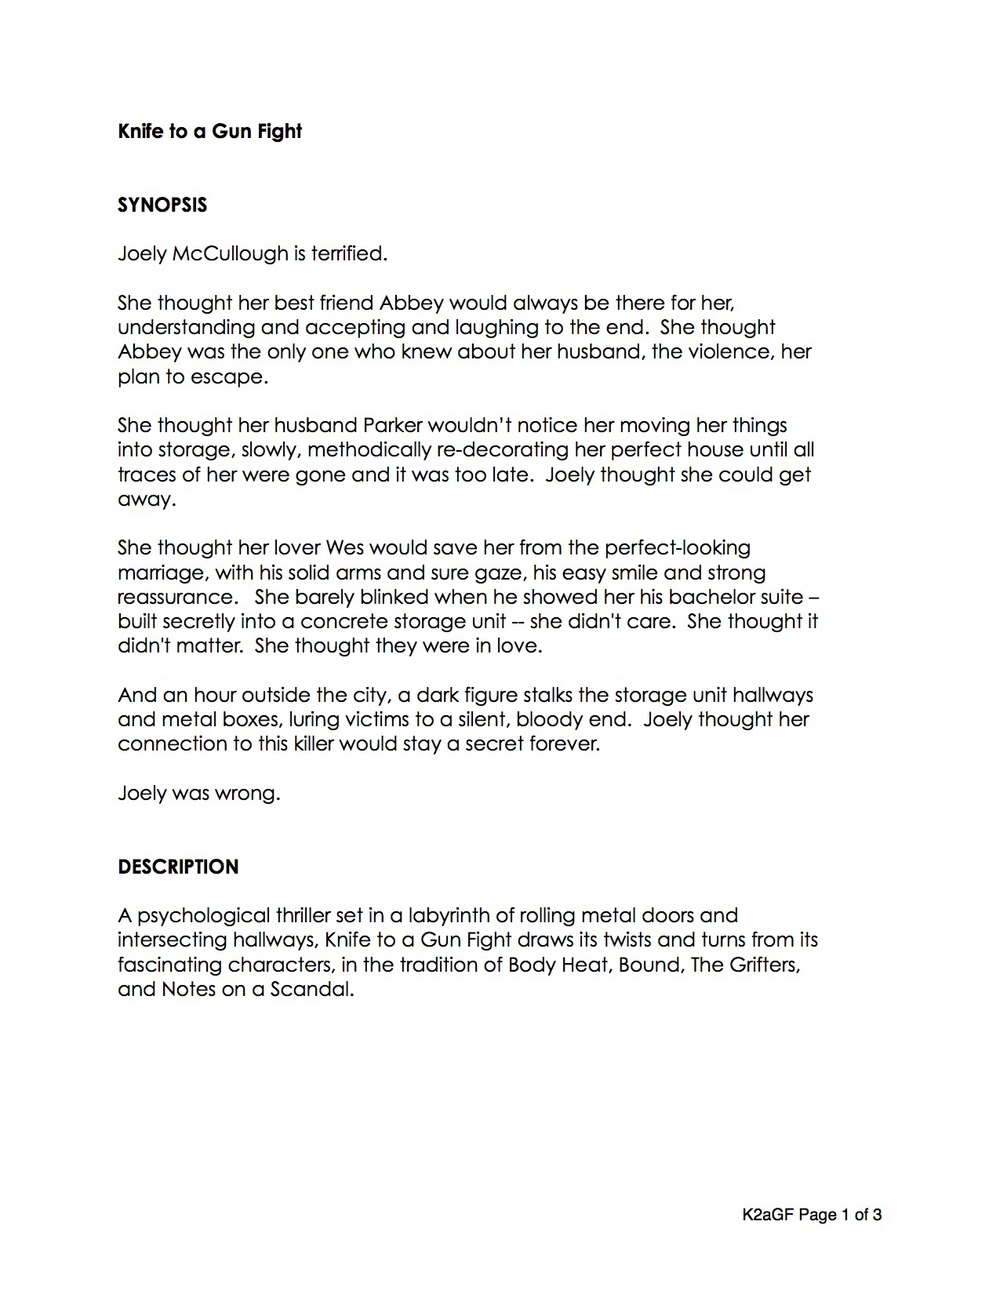 sample kagf film treatment adam jackman knife to a gunfight feature short form rundown page 1 jpg